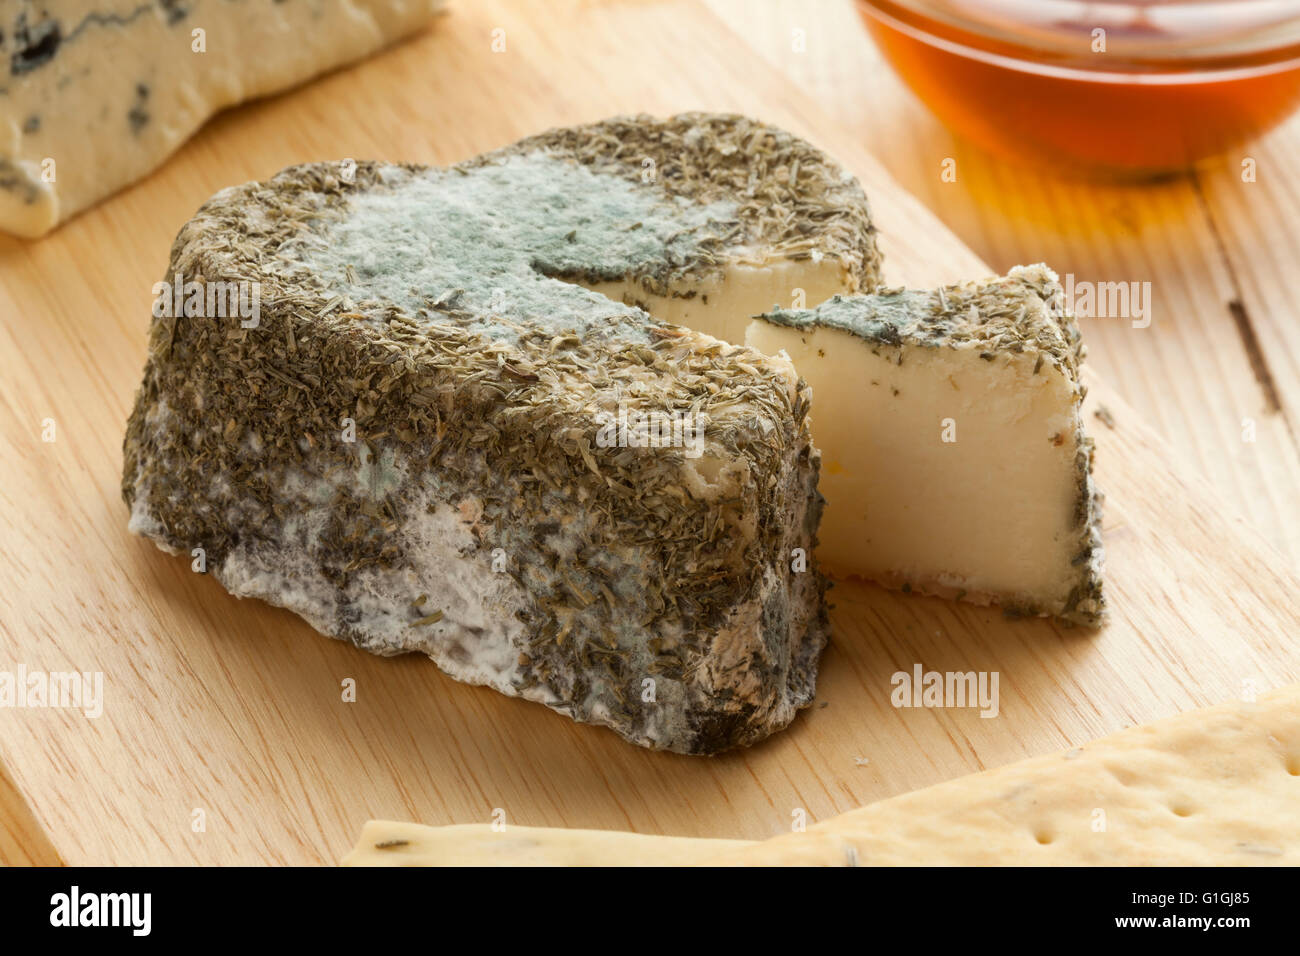 Traditional French goats cheese with edible mold - Stock Image